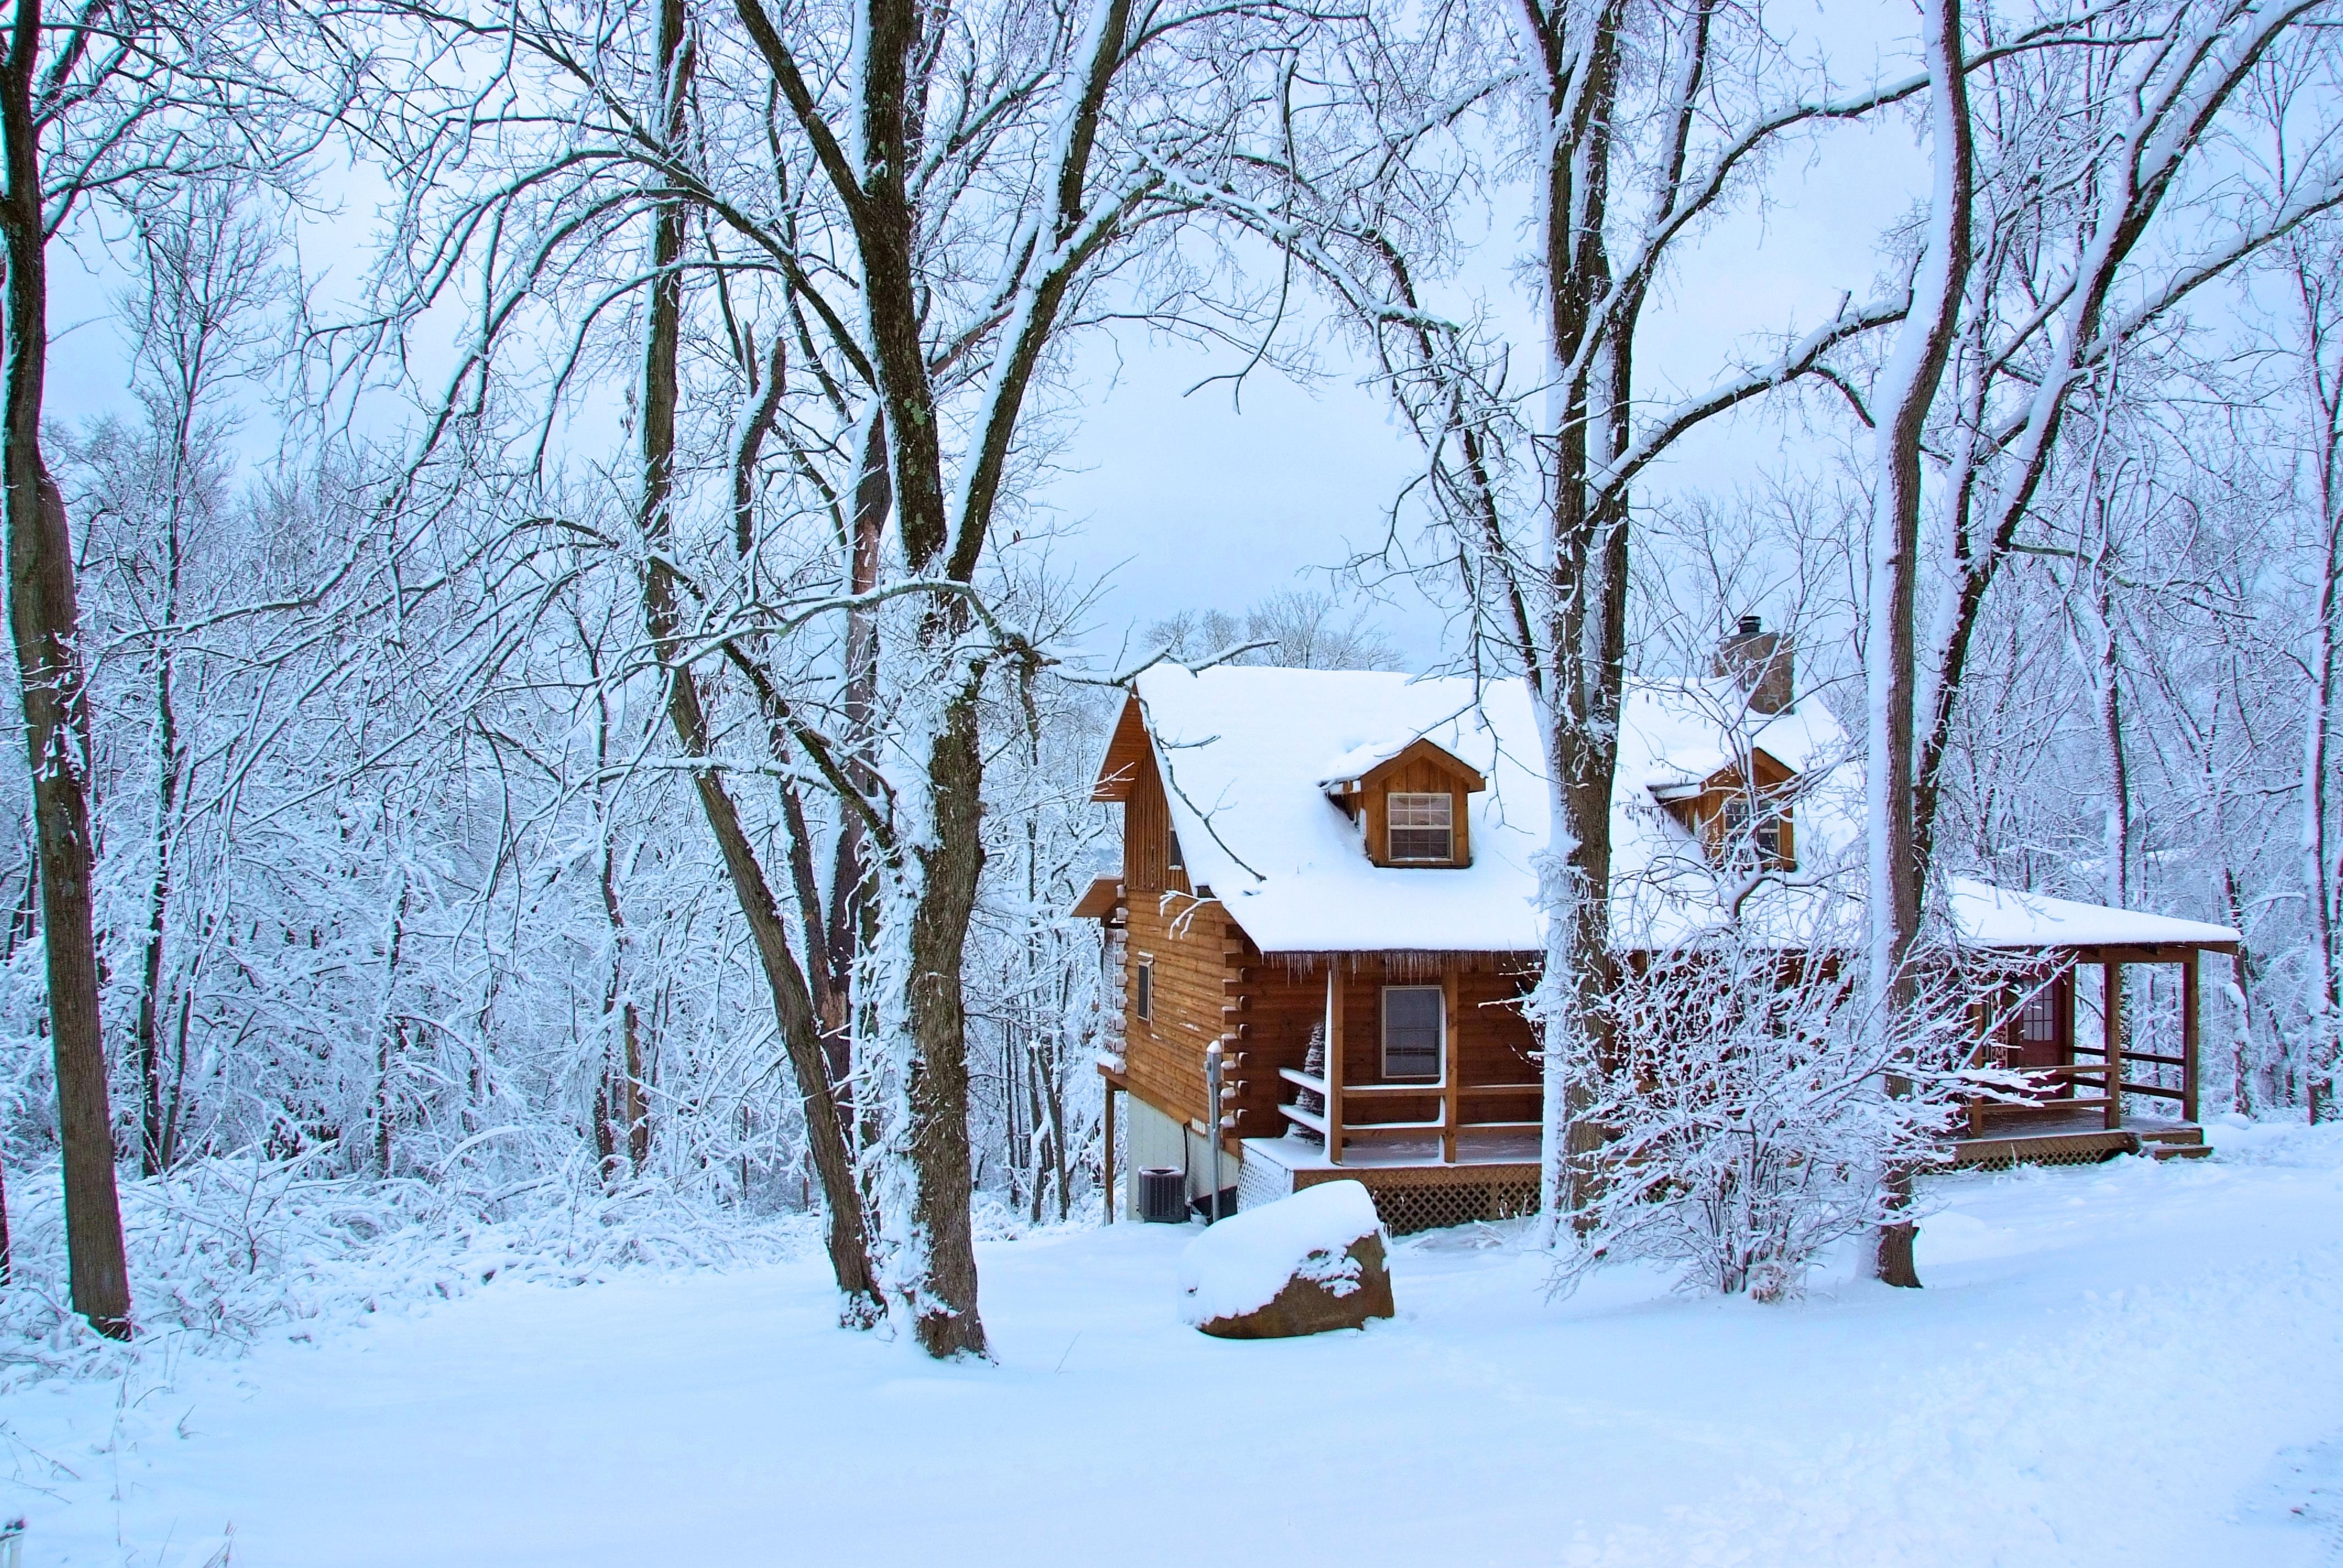 Winter Cabin Wallpaper 99 images in Collection Page 1 4256x2848